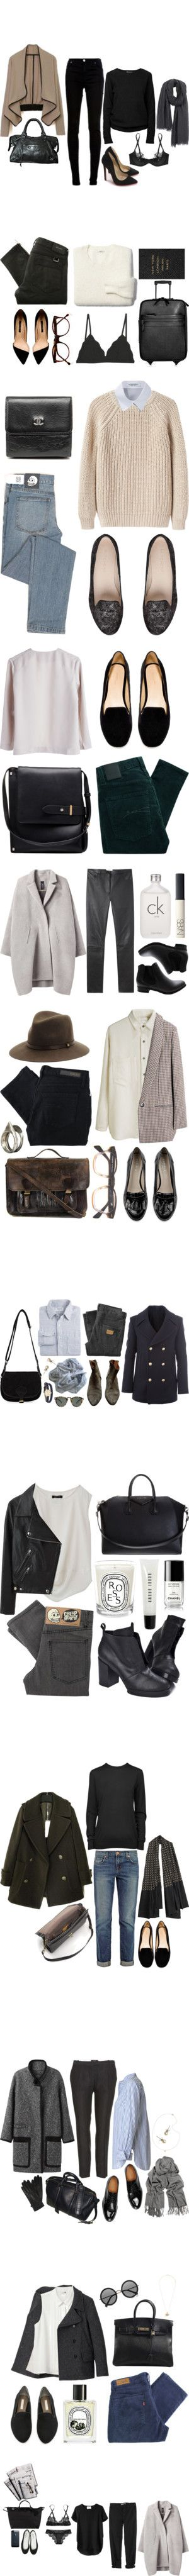 """New York in October"" by katie-marieferguson ❤ liked on Polyvore:"